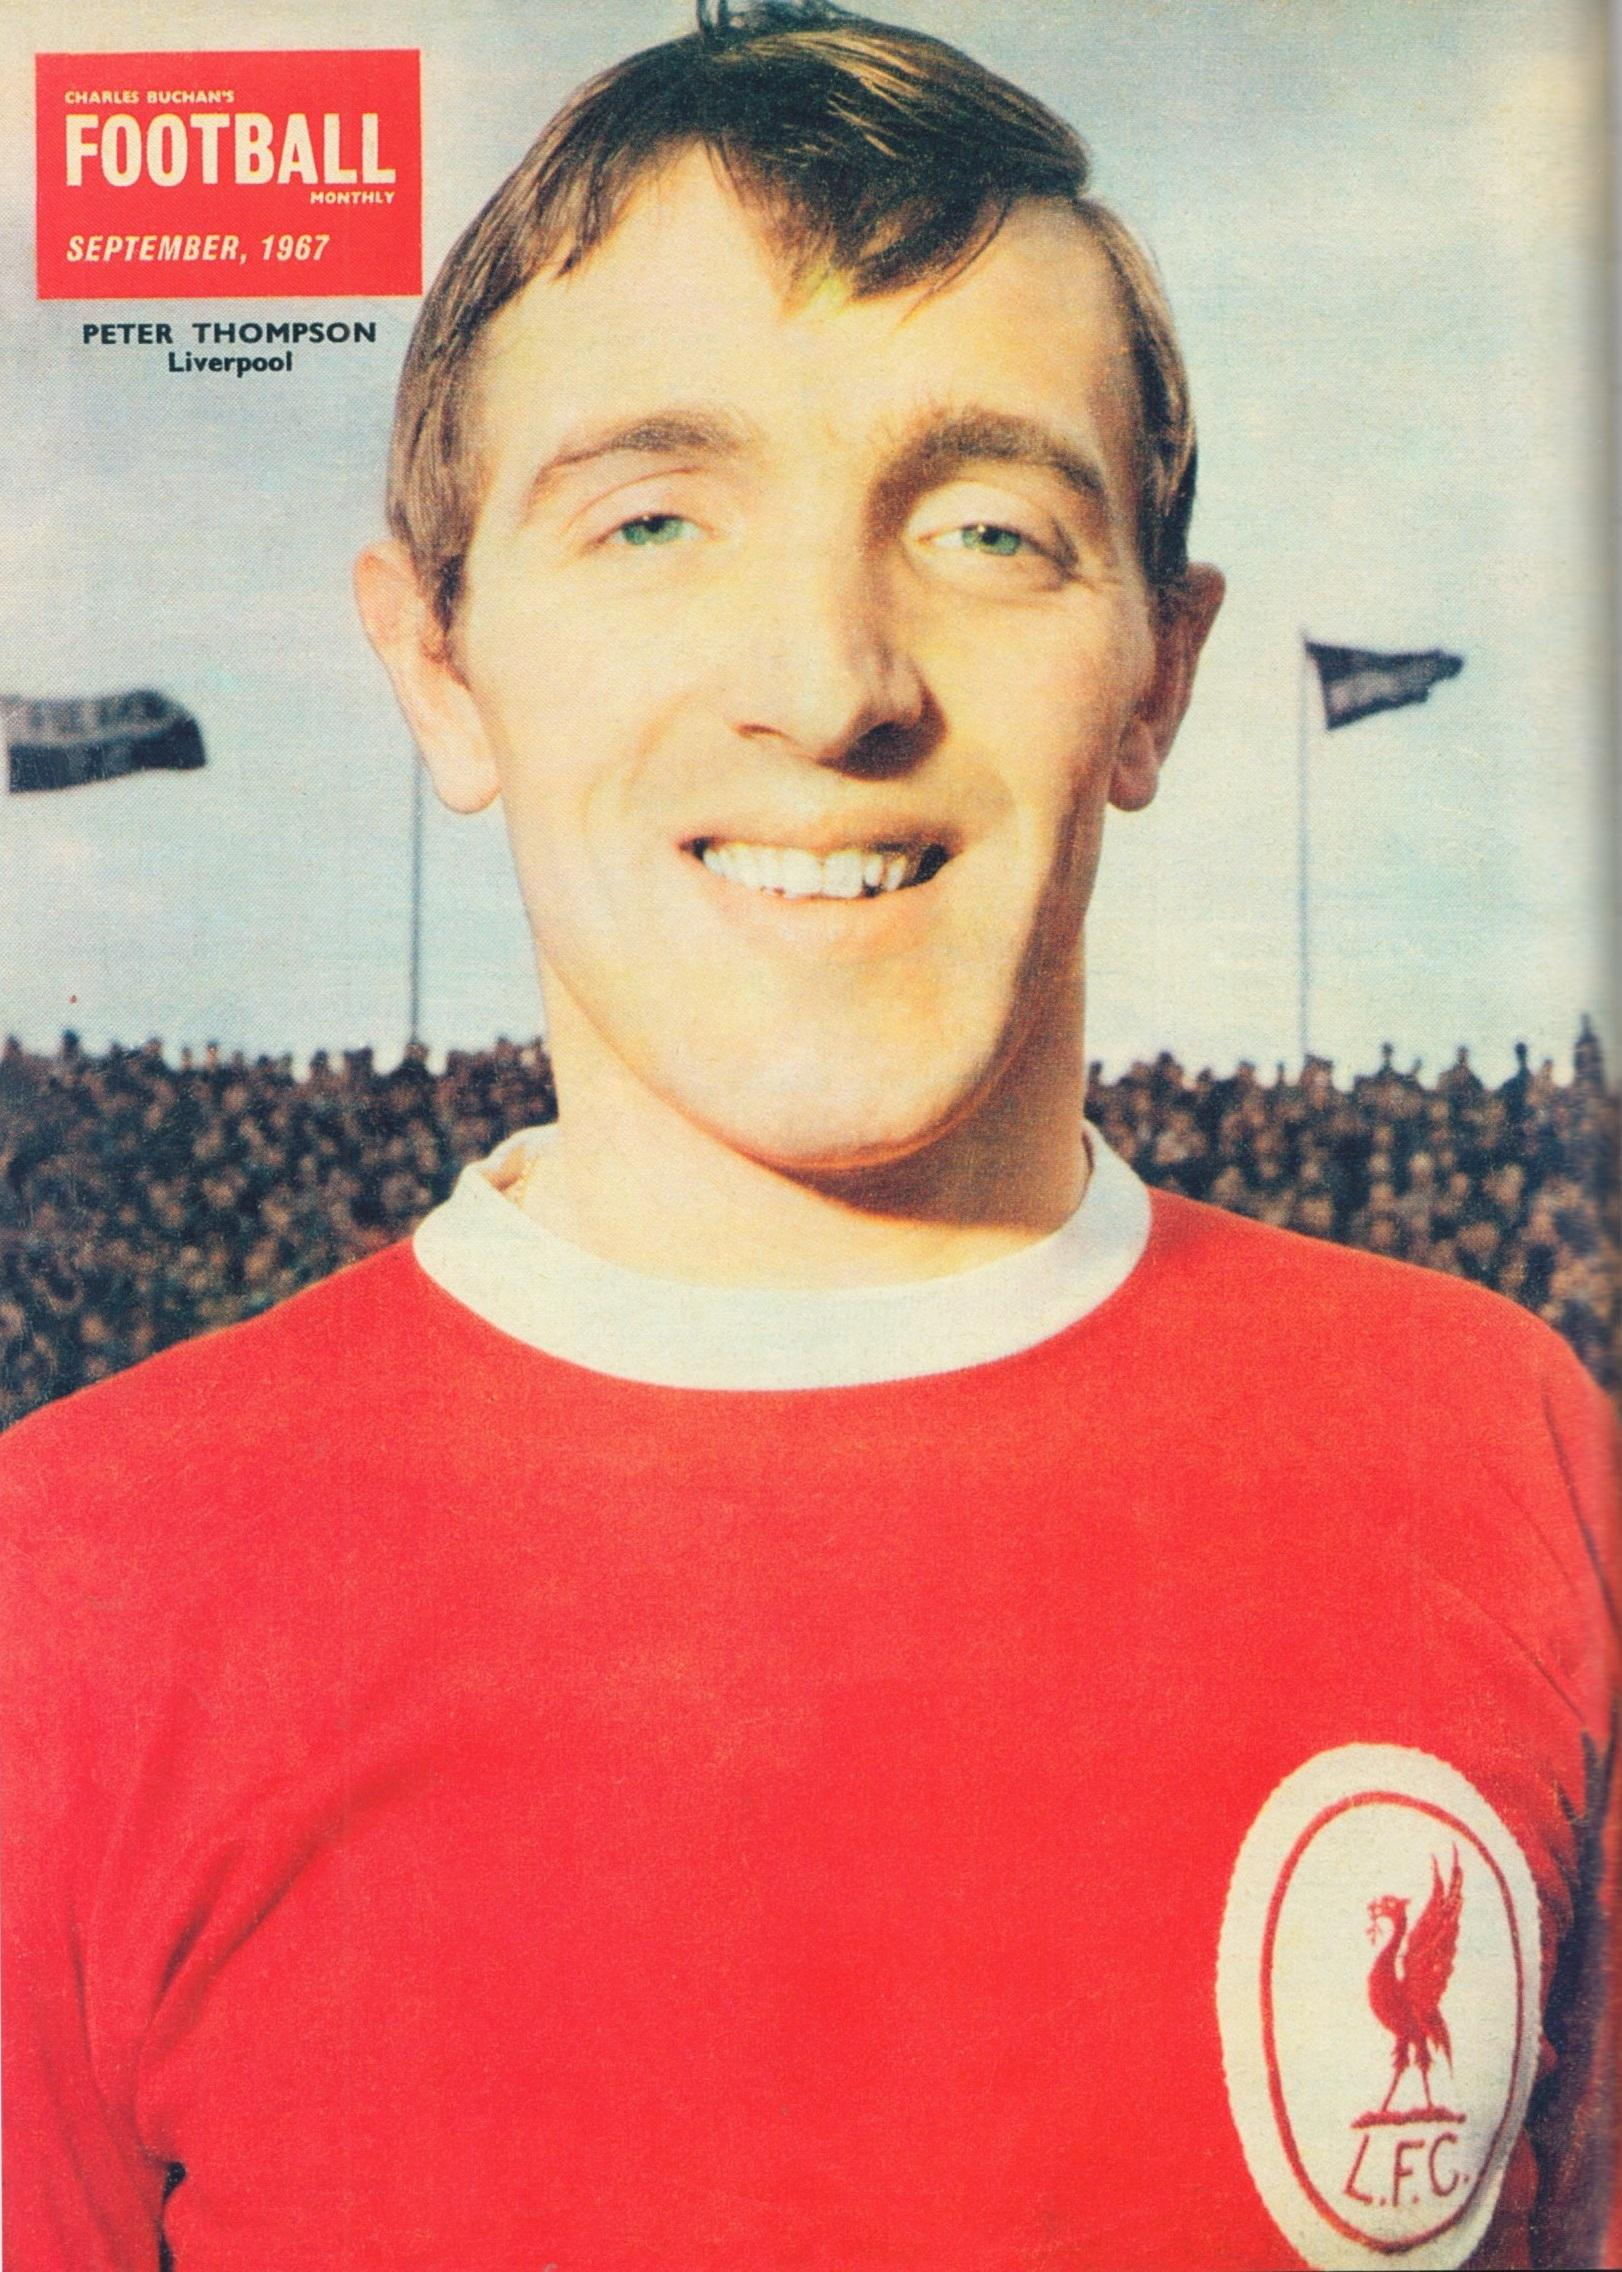 Peter Thompson on the cover of the Football Monthly September 1967